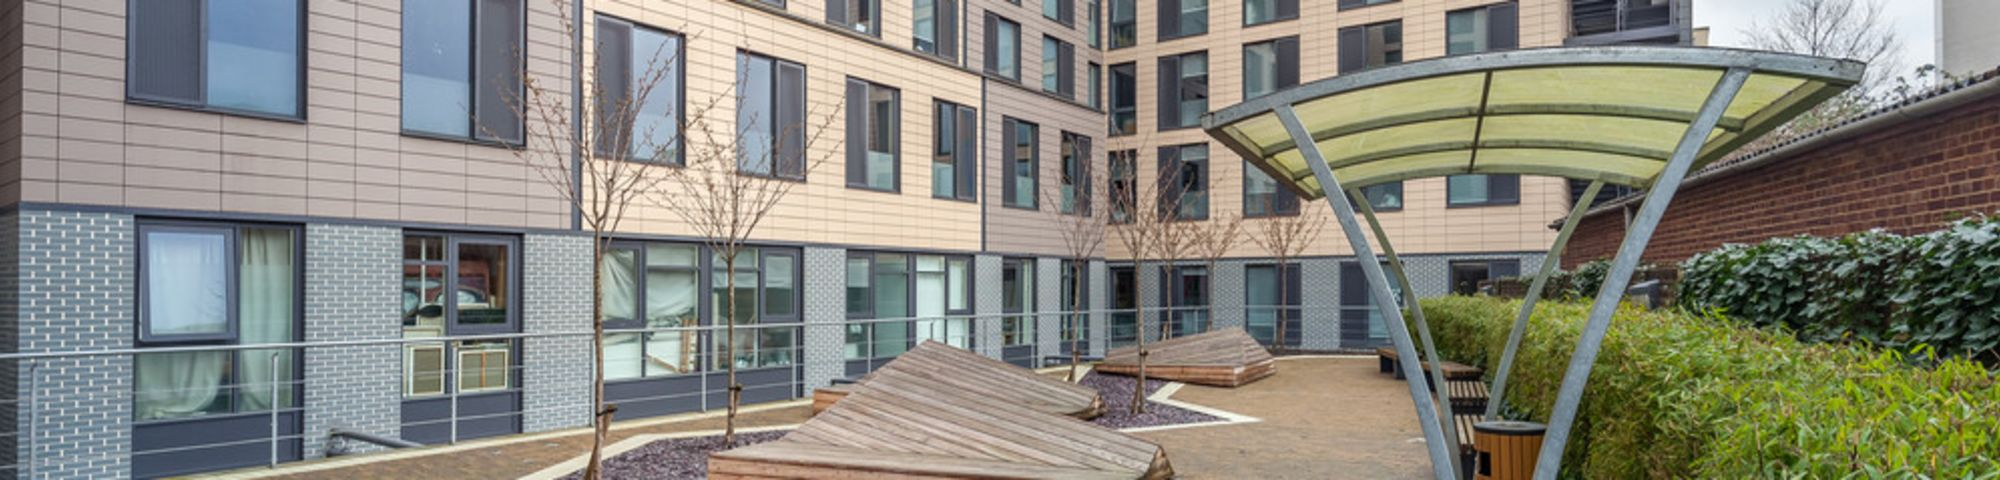 Exterior shot of Glassyard Building hall of residence